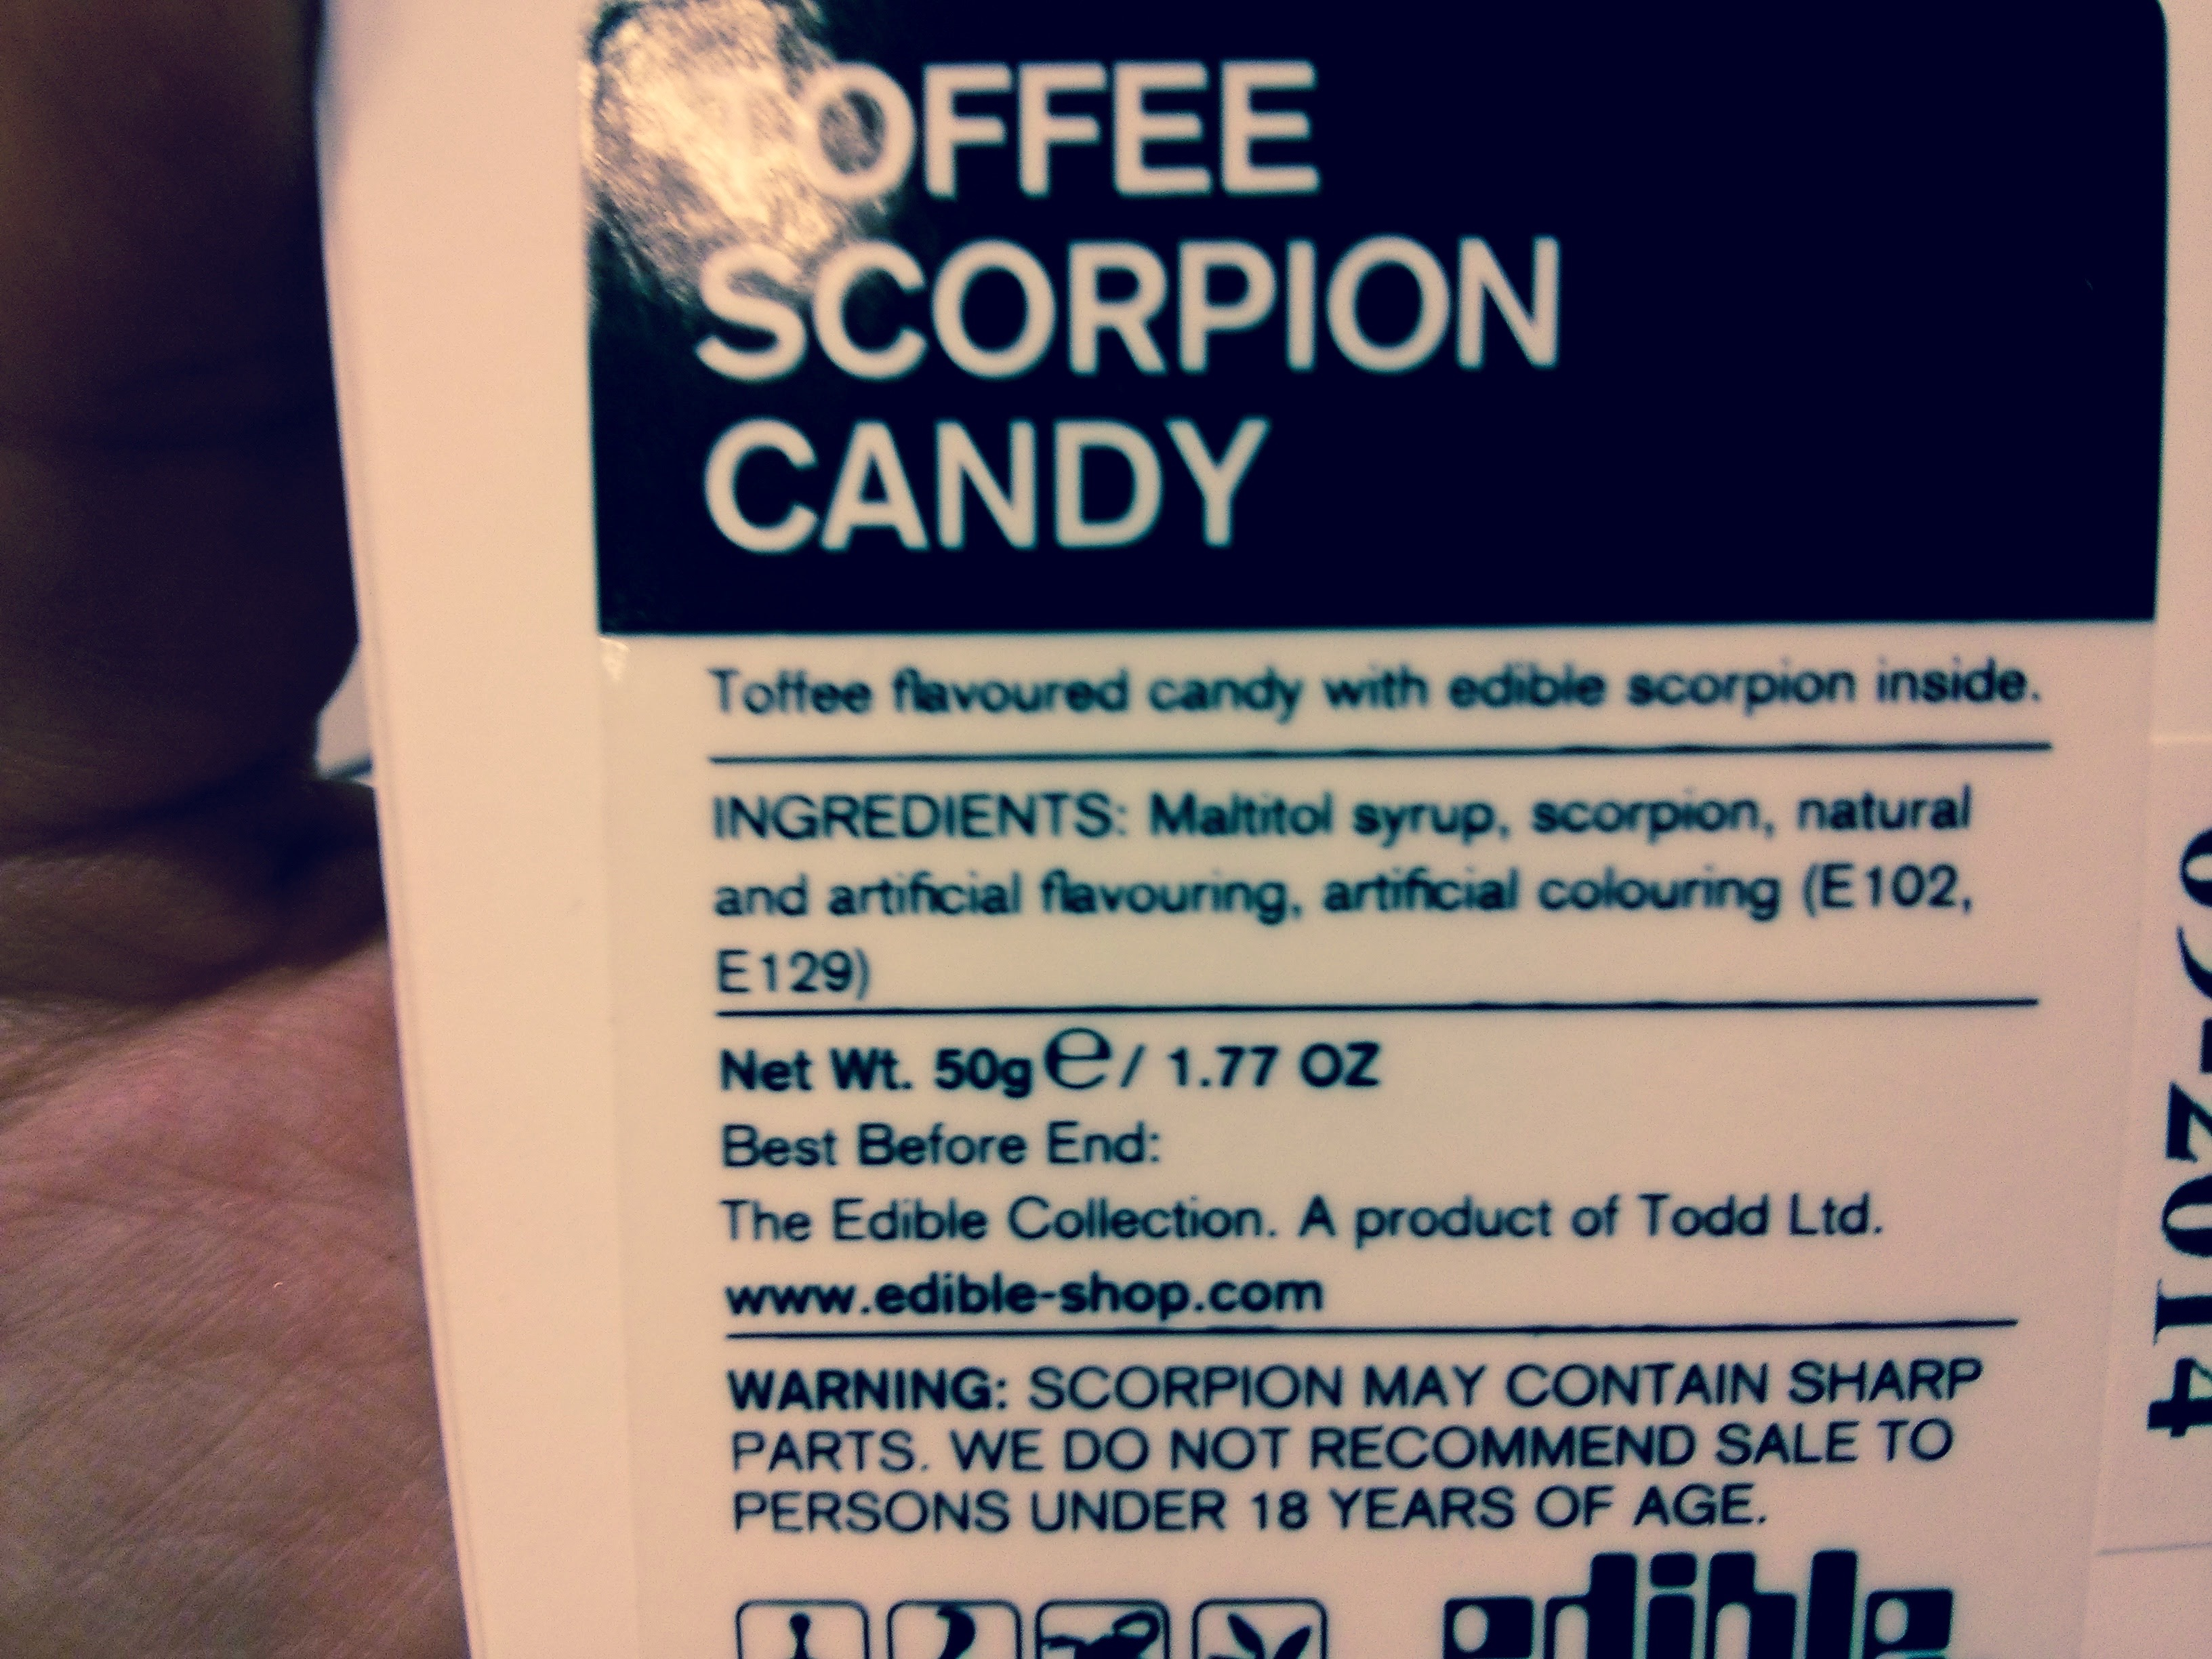 Toffee Scorpion Candy